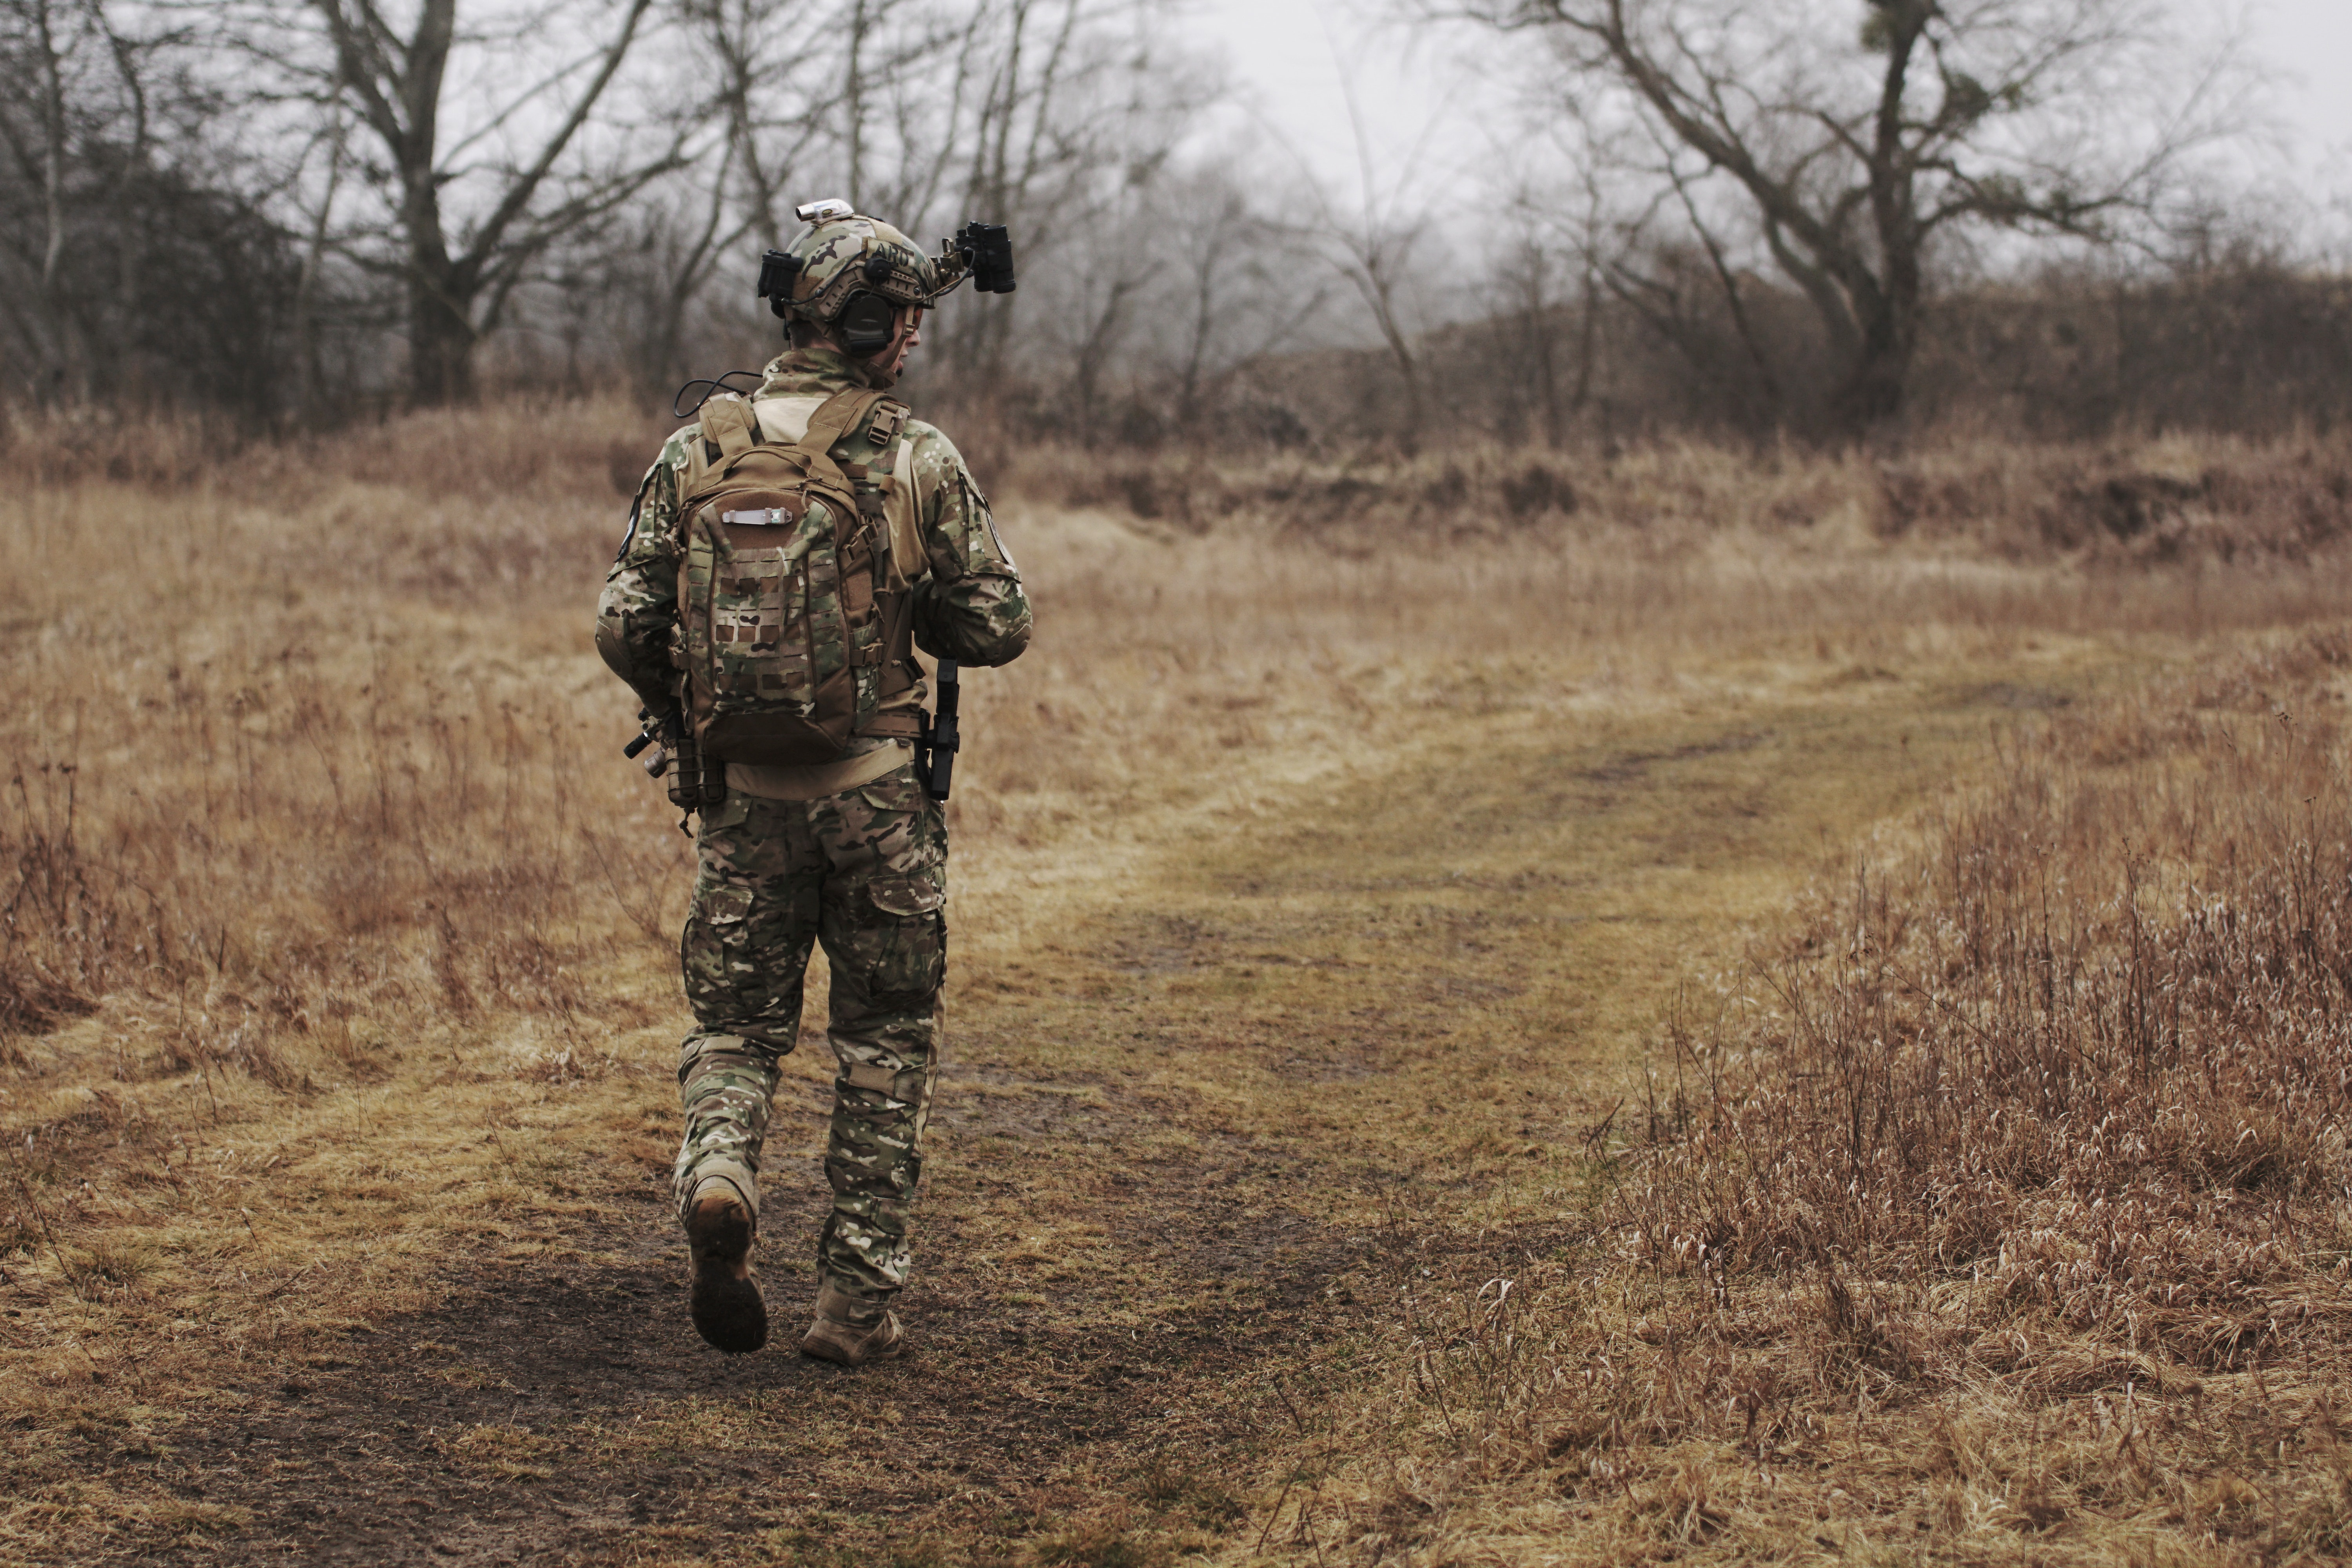 Prolonged Field Care: Lessons from the Battlefield to the home front